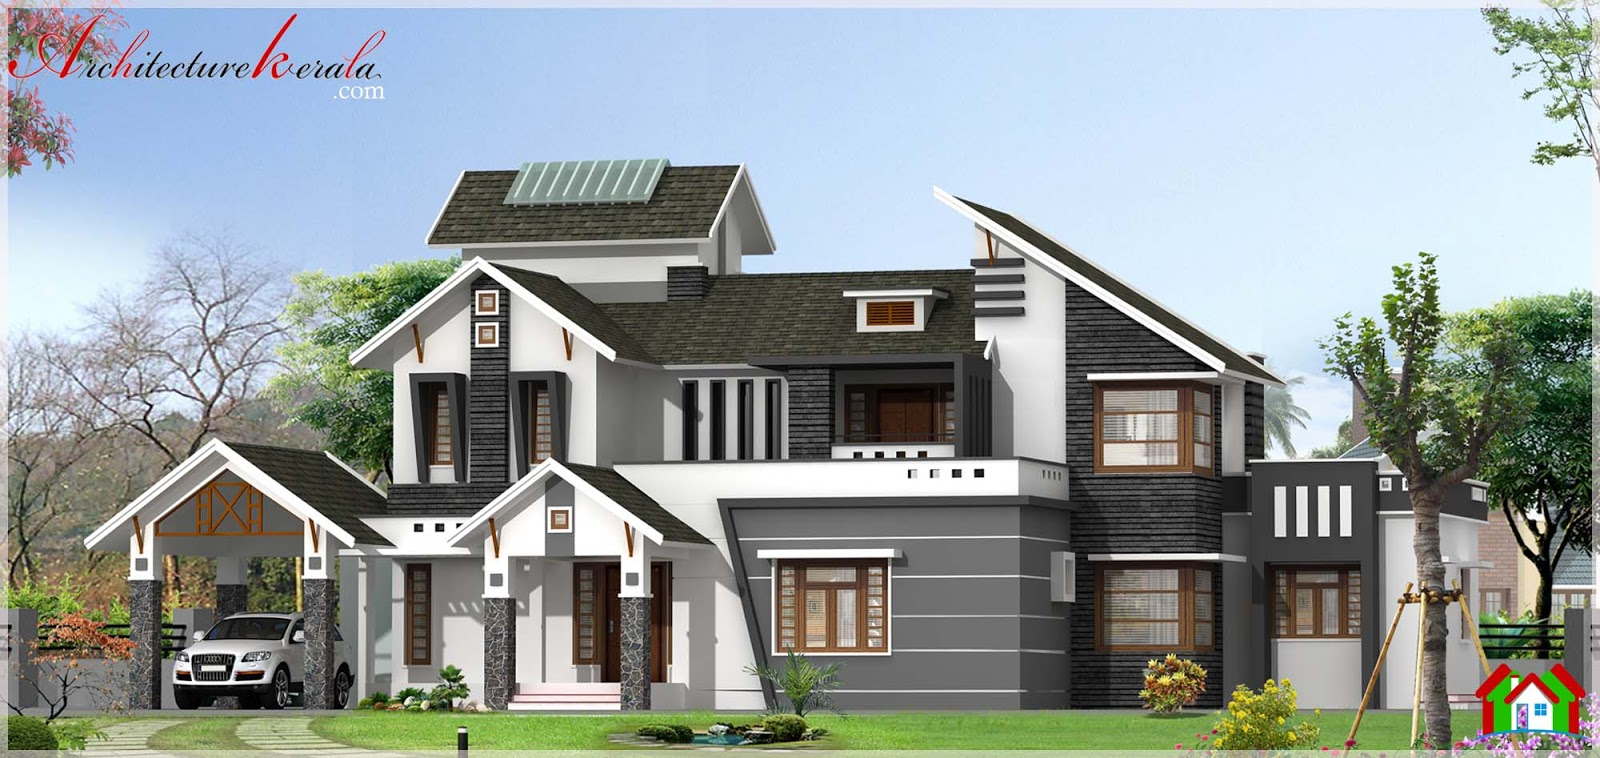 Modern House Elevation In 3000 Square Feet Architecture: 3000 square foot homes